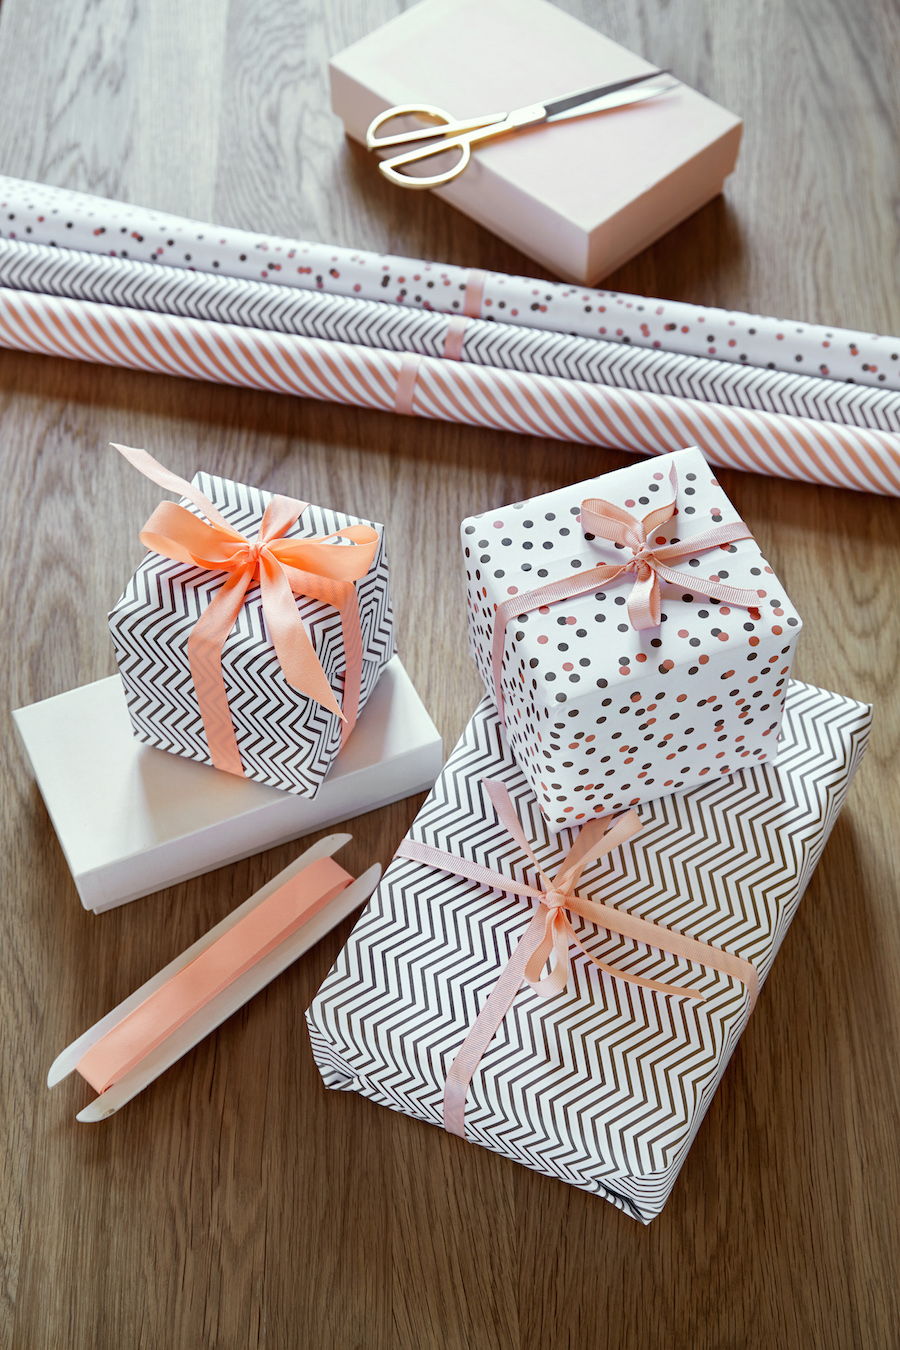 wrapping_paper-froh_frau2.jpg